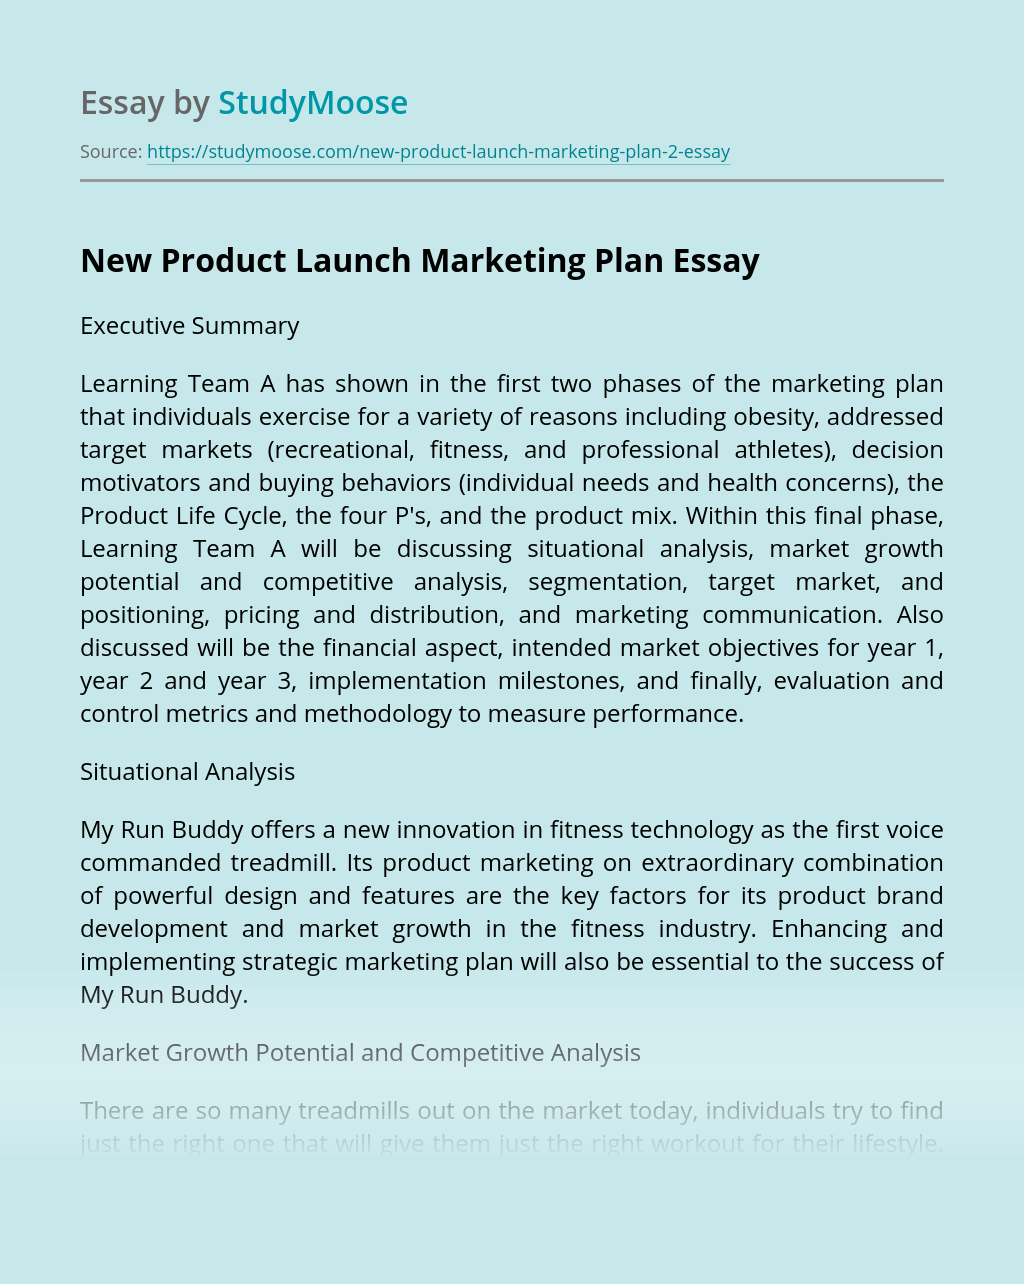 Enhancing and implementing strategic marketing plan